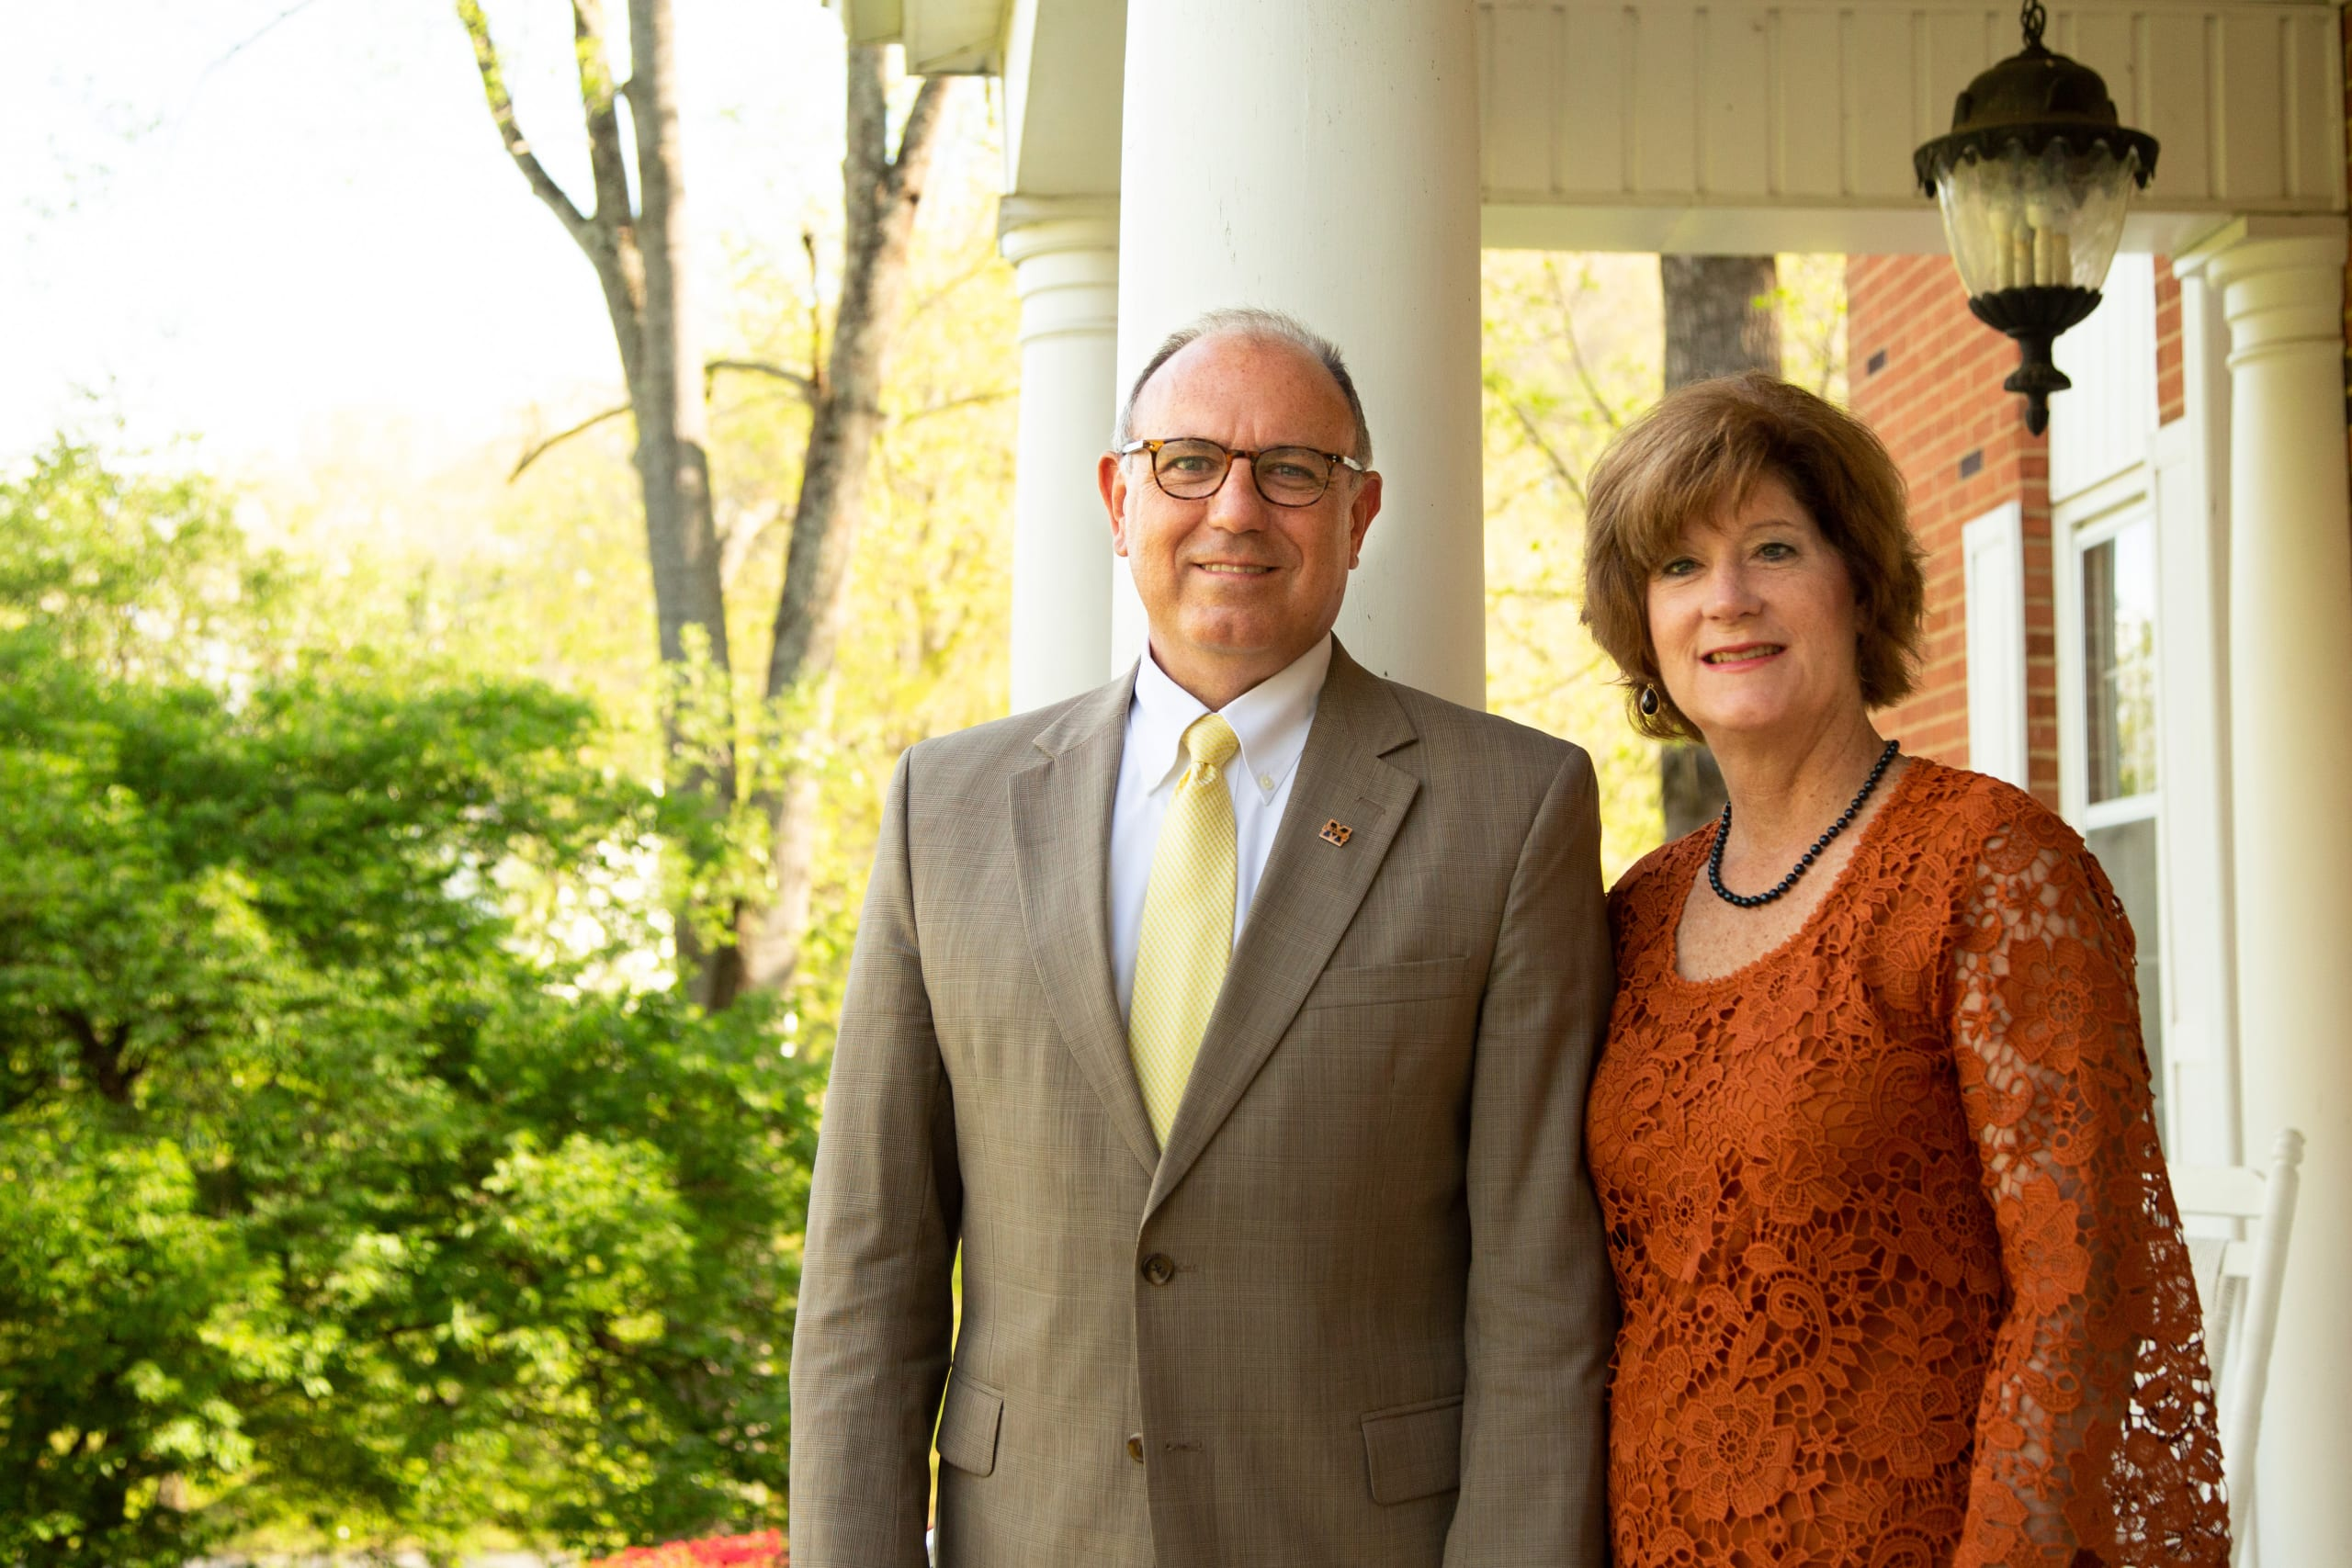 President and First Lady Bill and Edwina Greer in front of Milligan University's Little Hartland Welcome Center.